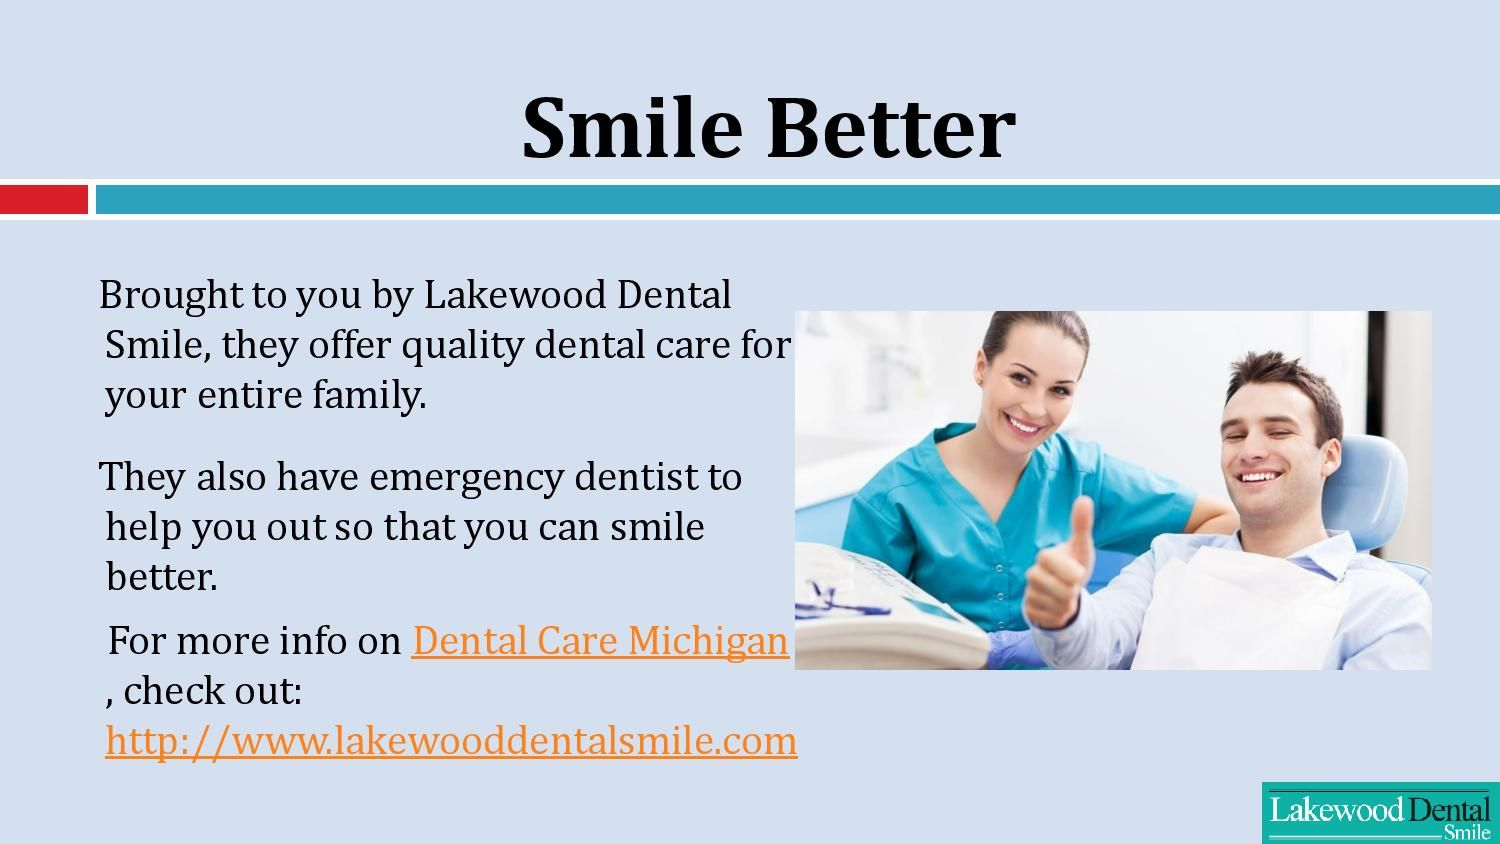 Lake wood Dental Smile is a professional and affordable